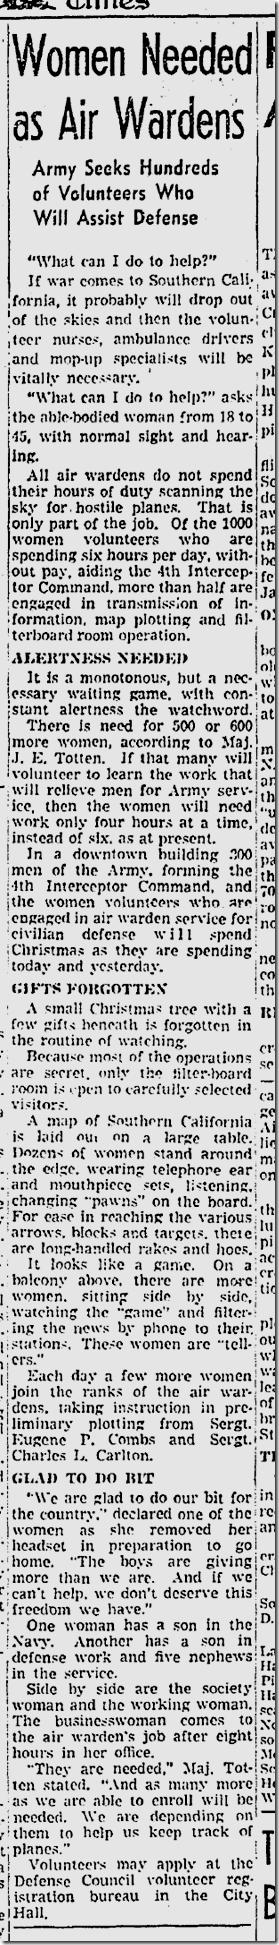 Dec. 24, 1941, Women Needed as Air Raid Wardens